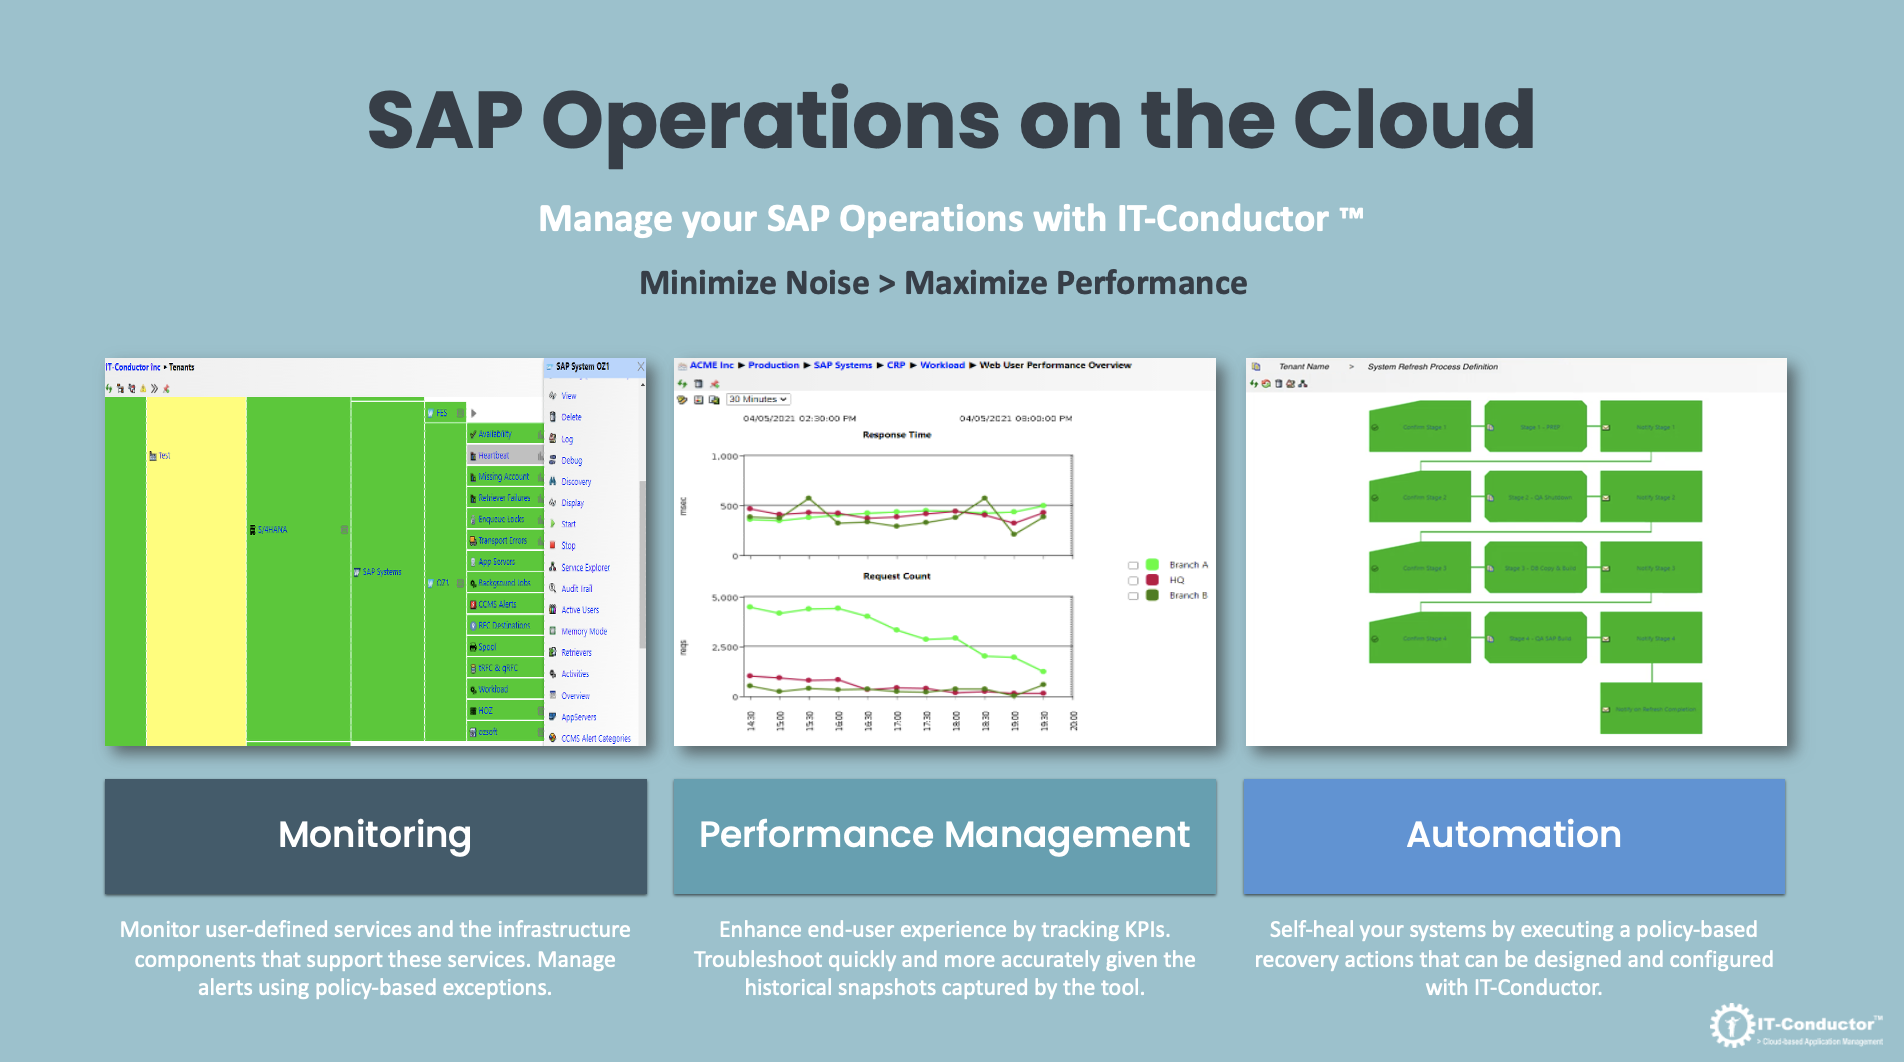 SAP Operations on the Cloud